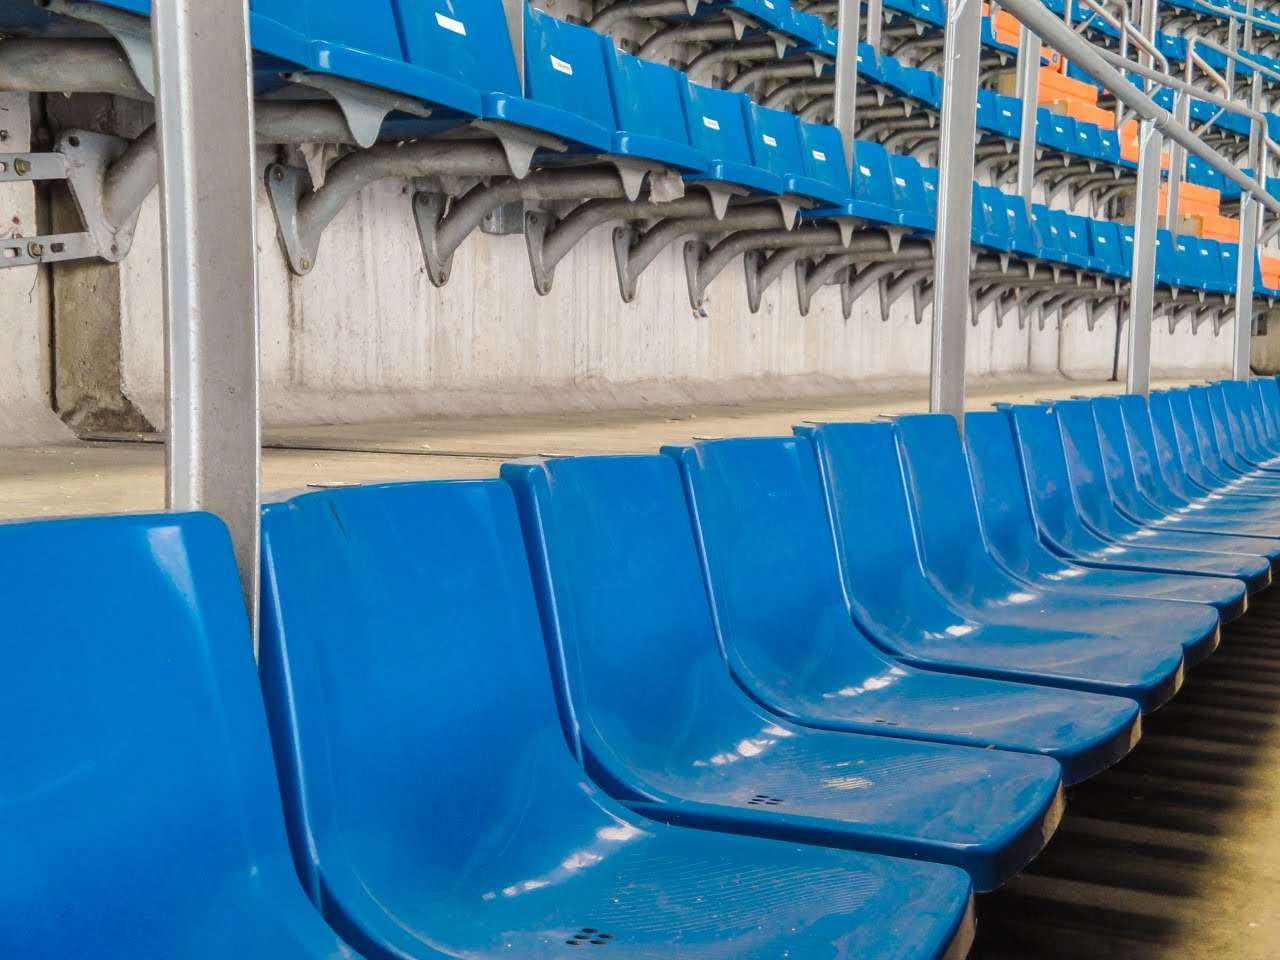 A close up of the seats where fans cheer on their team